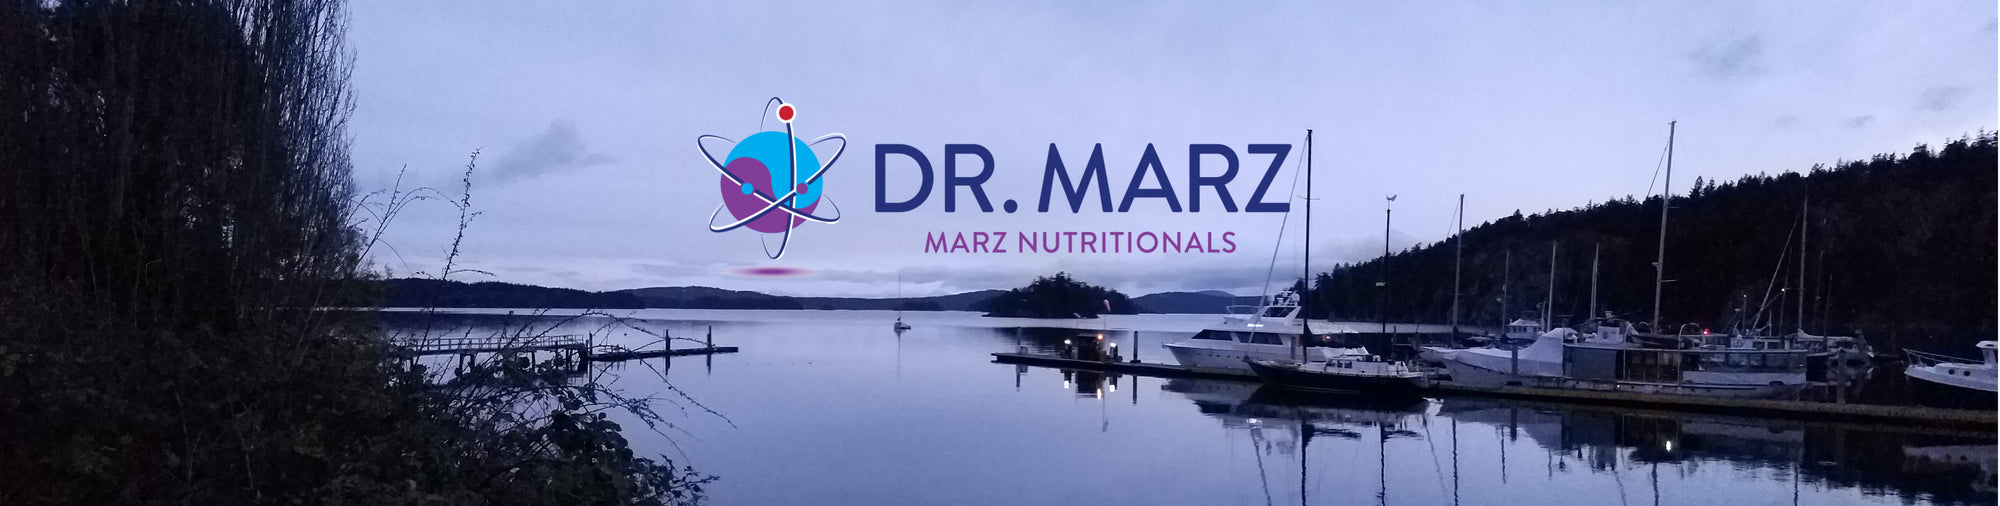 "<span style=""color: #f89021;"">Marz Nutritionals</span>"